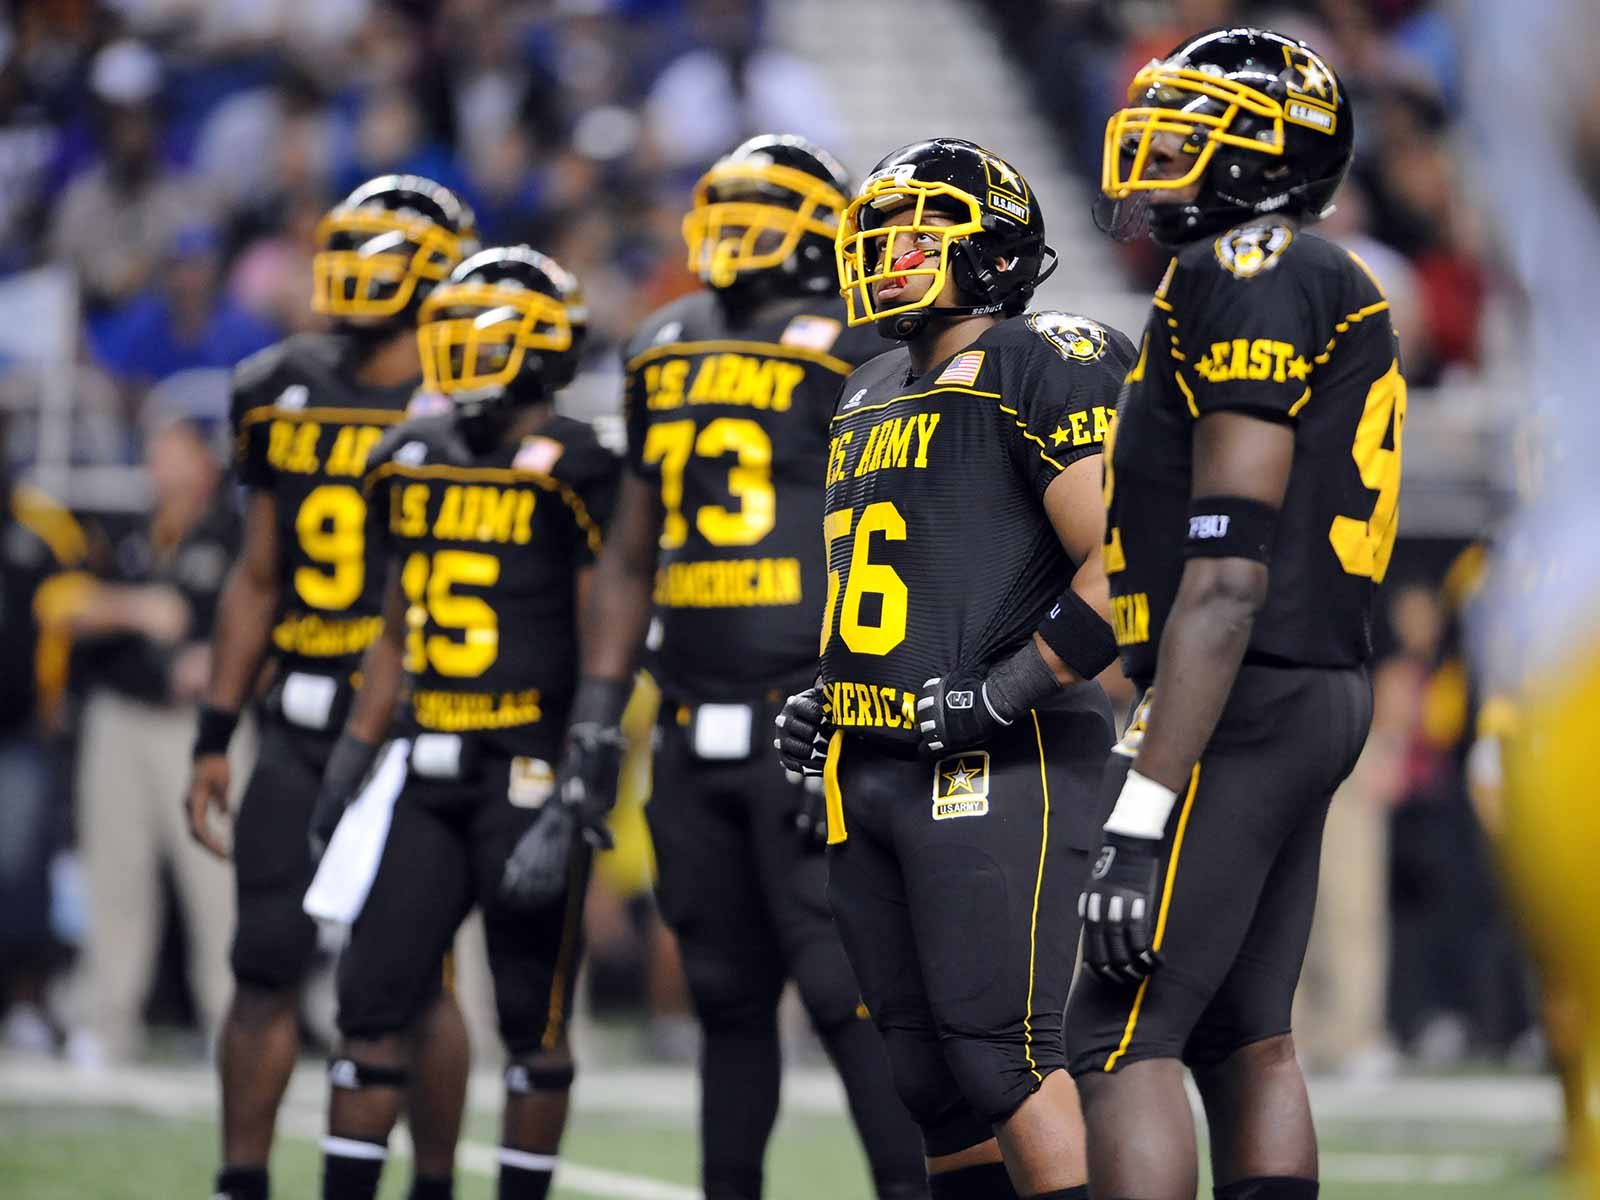 U.S. Army All-American Game